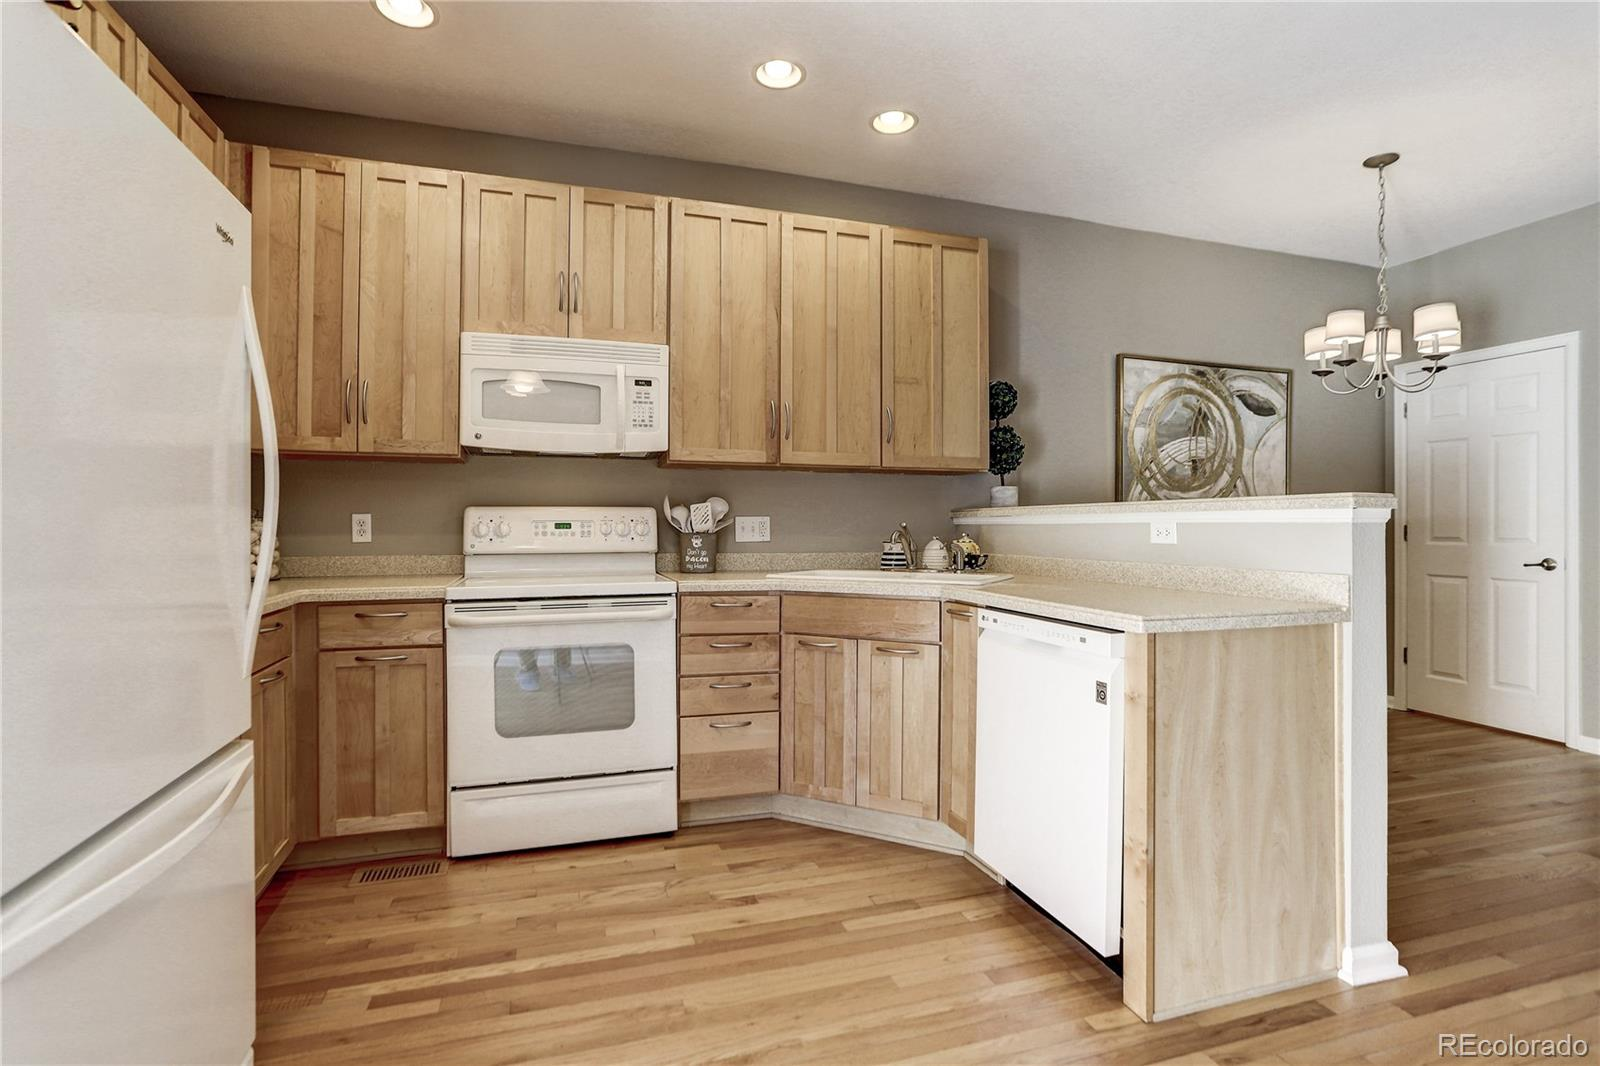 MLS# 7252517 - 2 - 4357 W 118th Place, Westminster, CO 80031